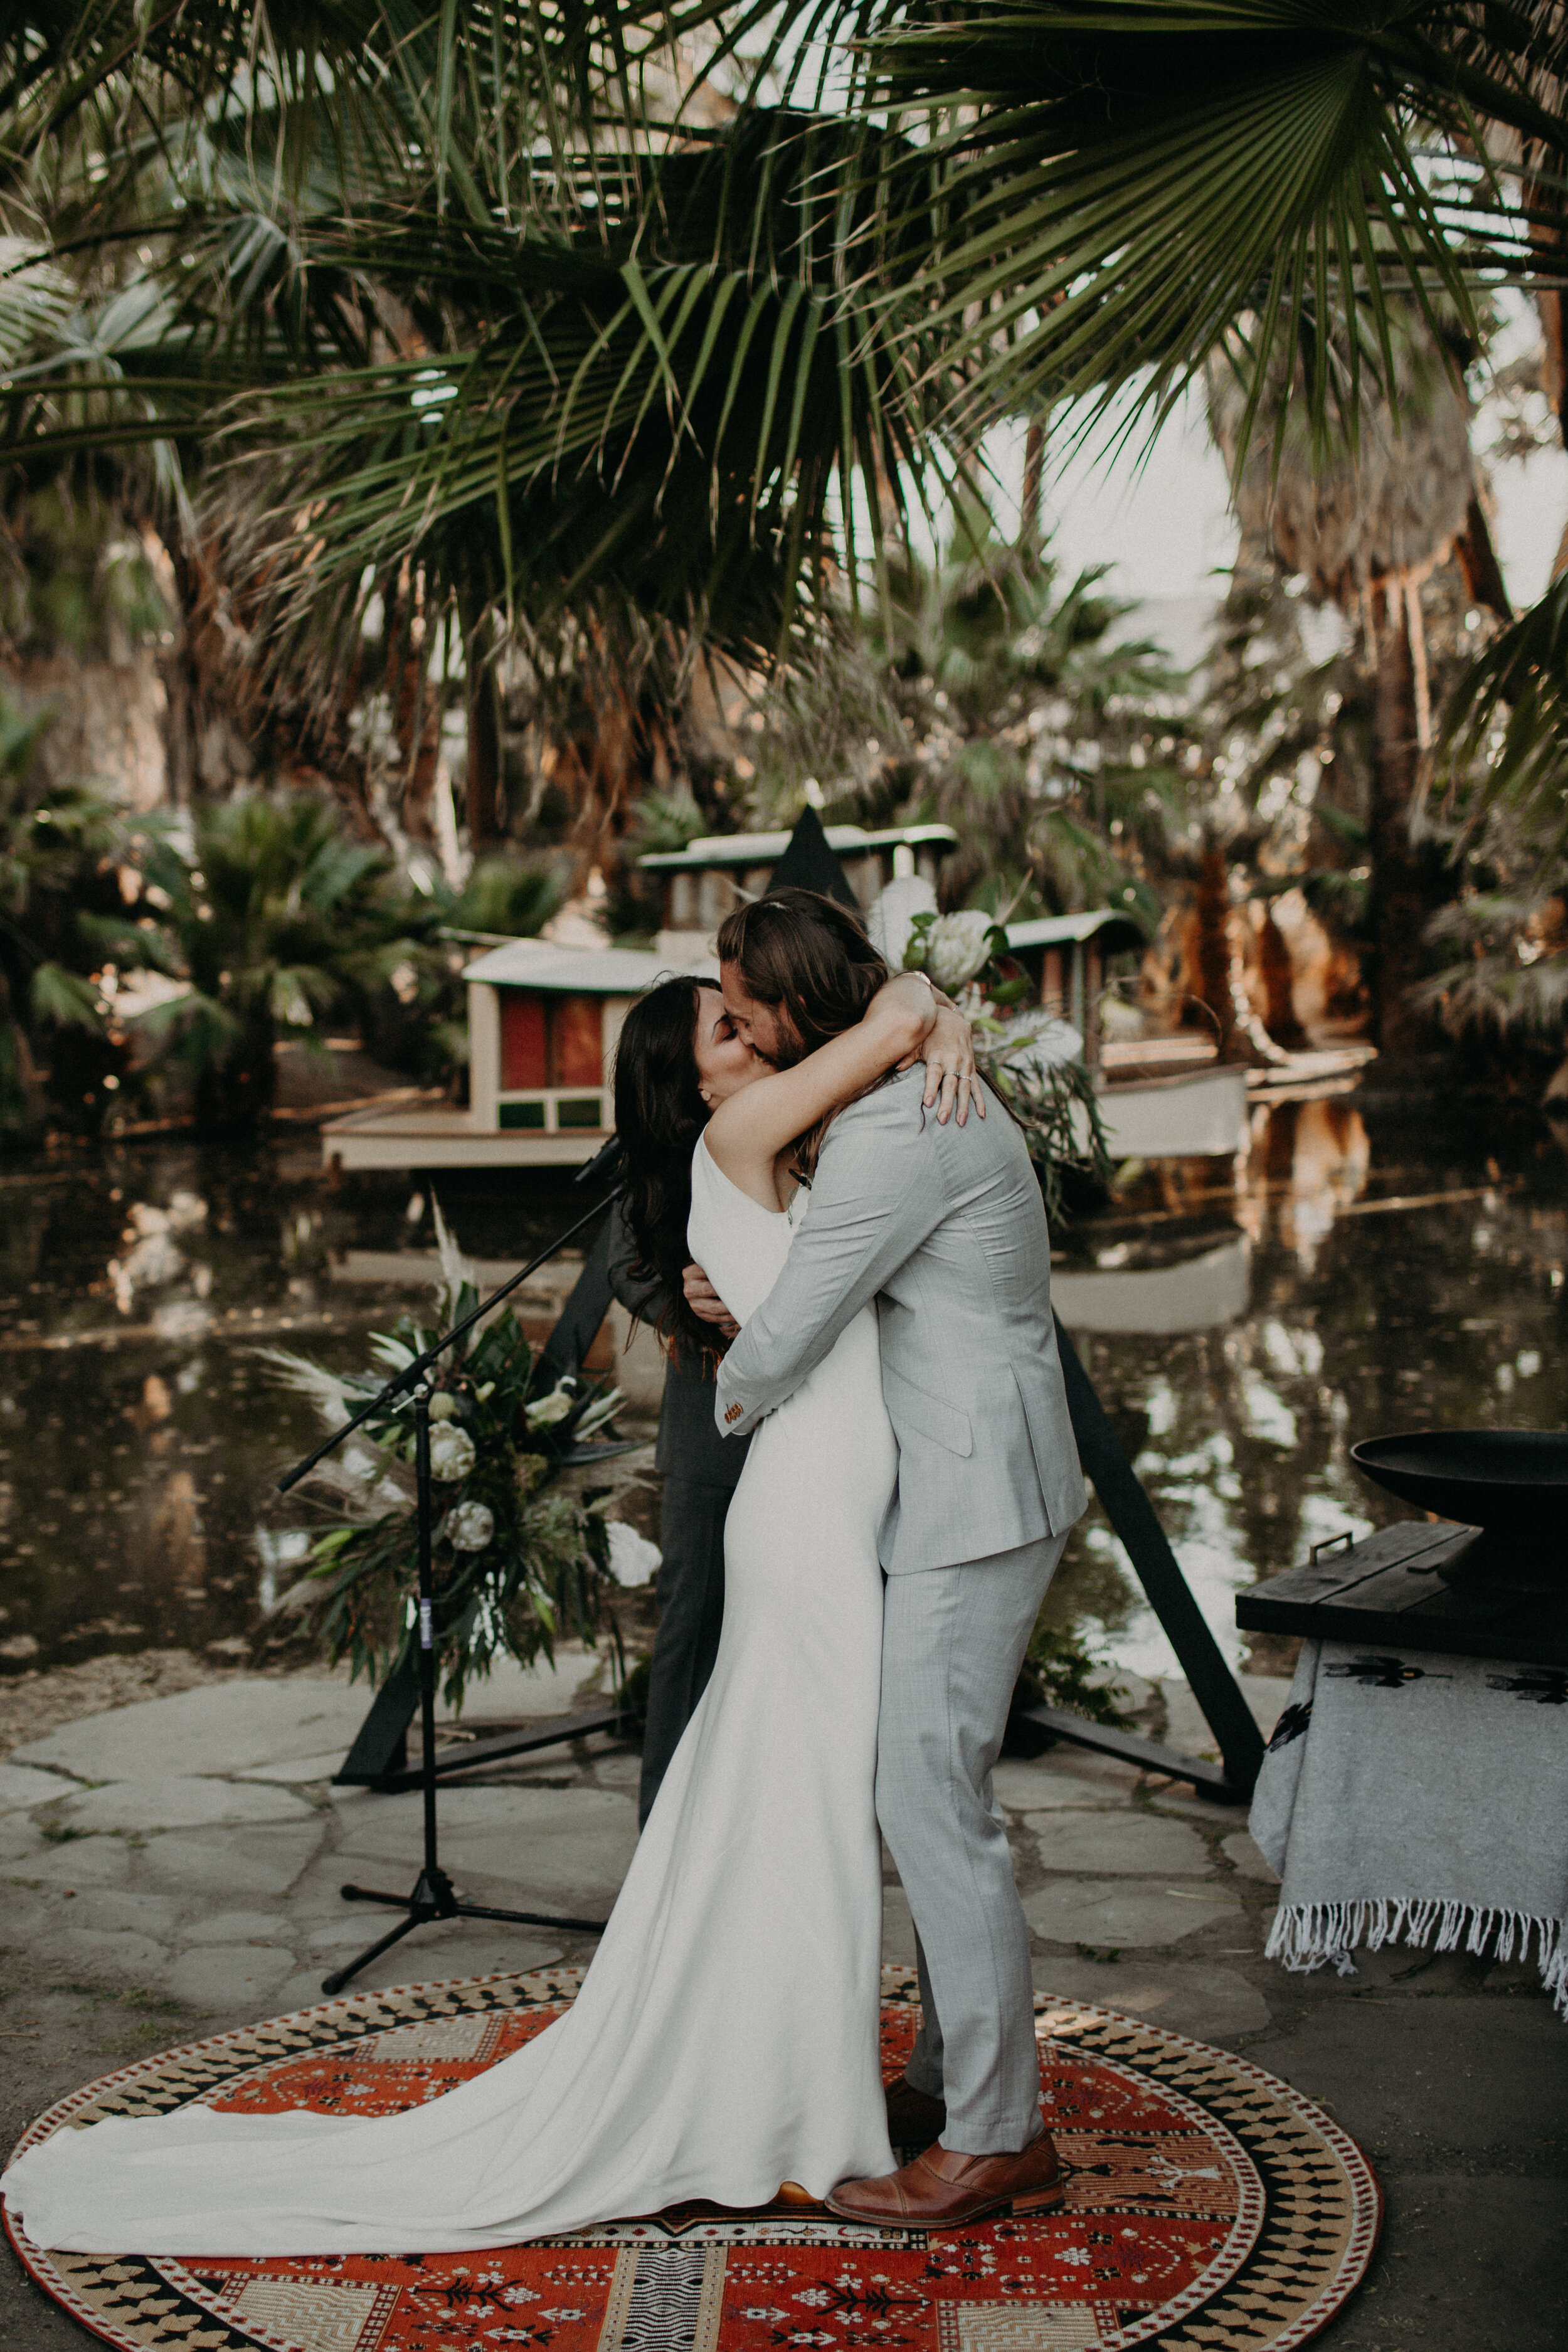 Magic DesertNuptials at29 Palms Inn - Kayla + Darren are absolute spitfires. They've been together forover a decade and you'd think they started dating three monthsago. Love and laughter and joy surrounded these two asthey tied the knot at 29 Palms Inn near Joshua Tree National Park.